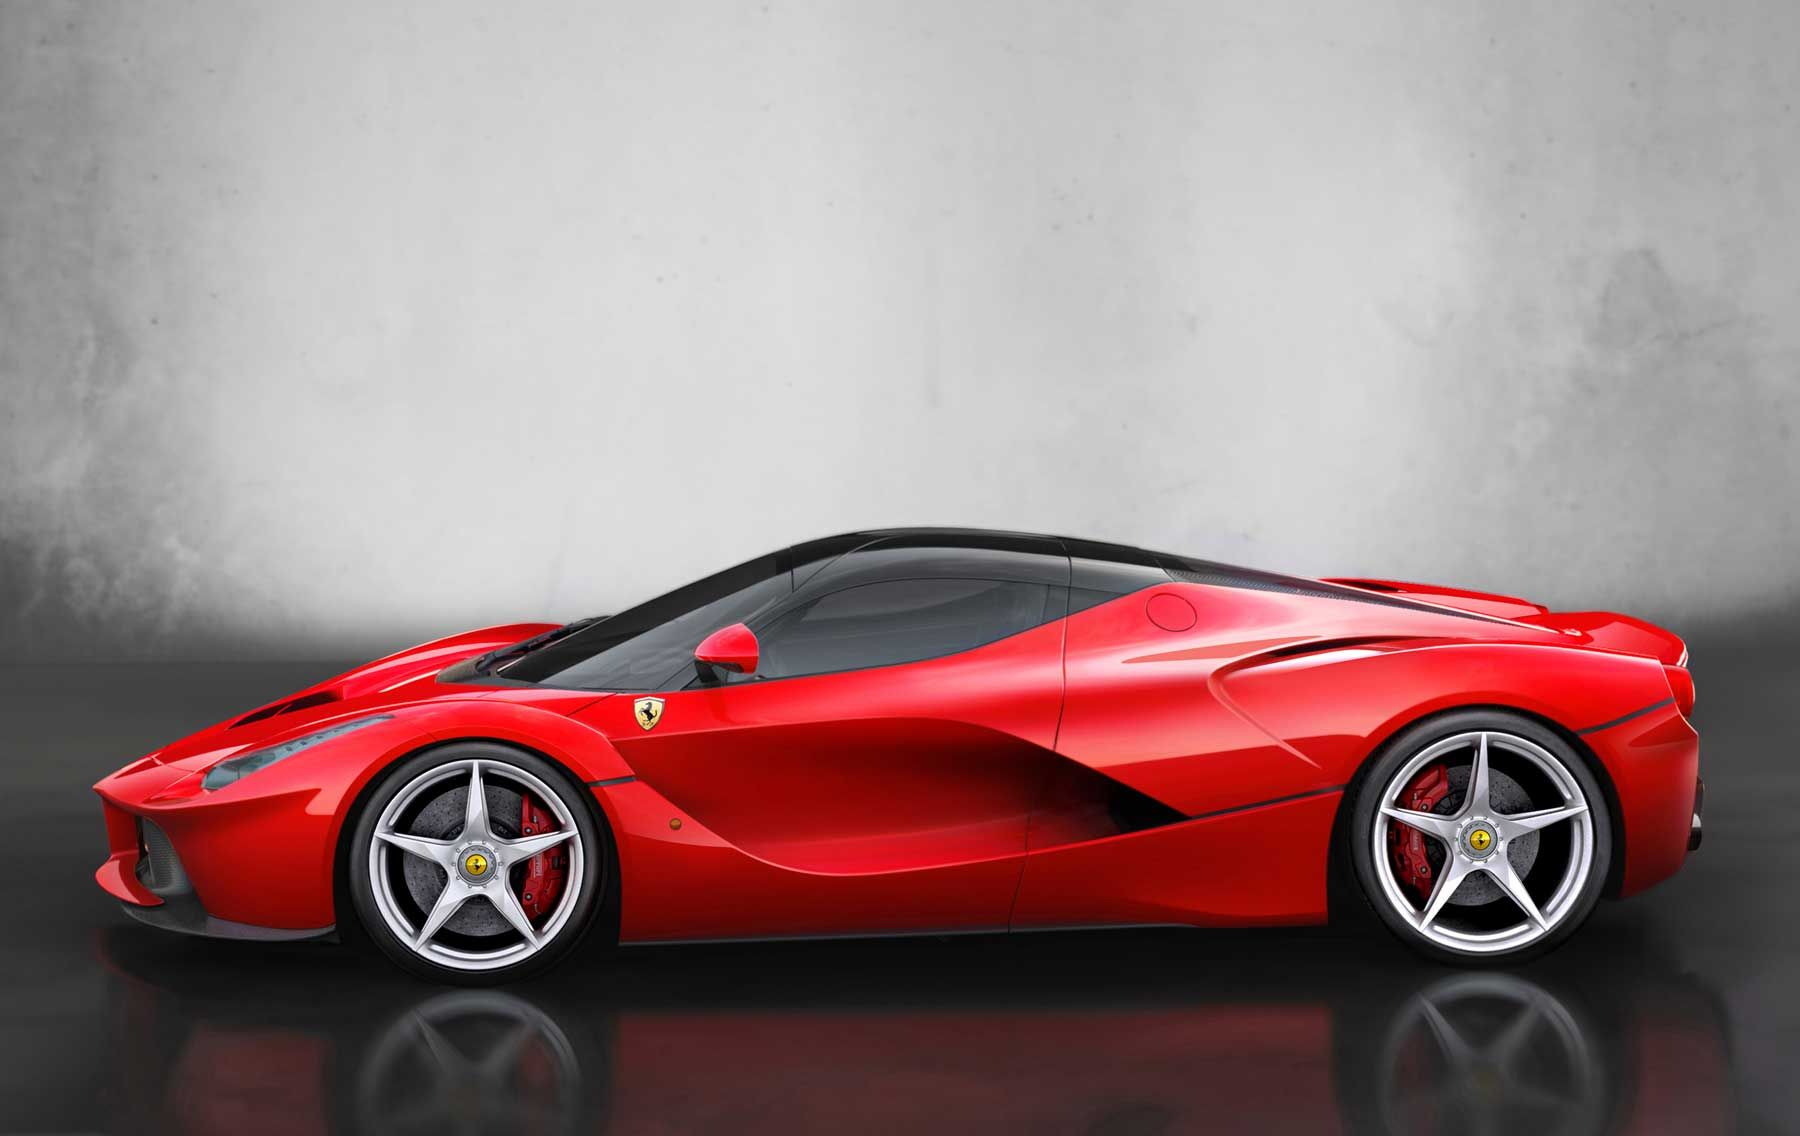 2019 2020 Ferrari Ferrari Laferrari Spider Open Version Of The